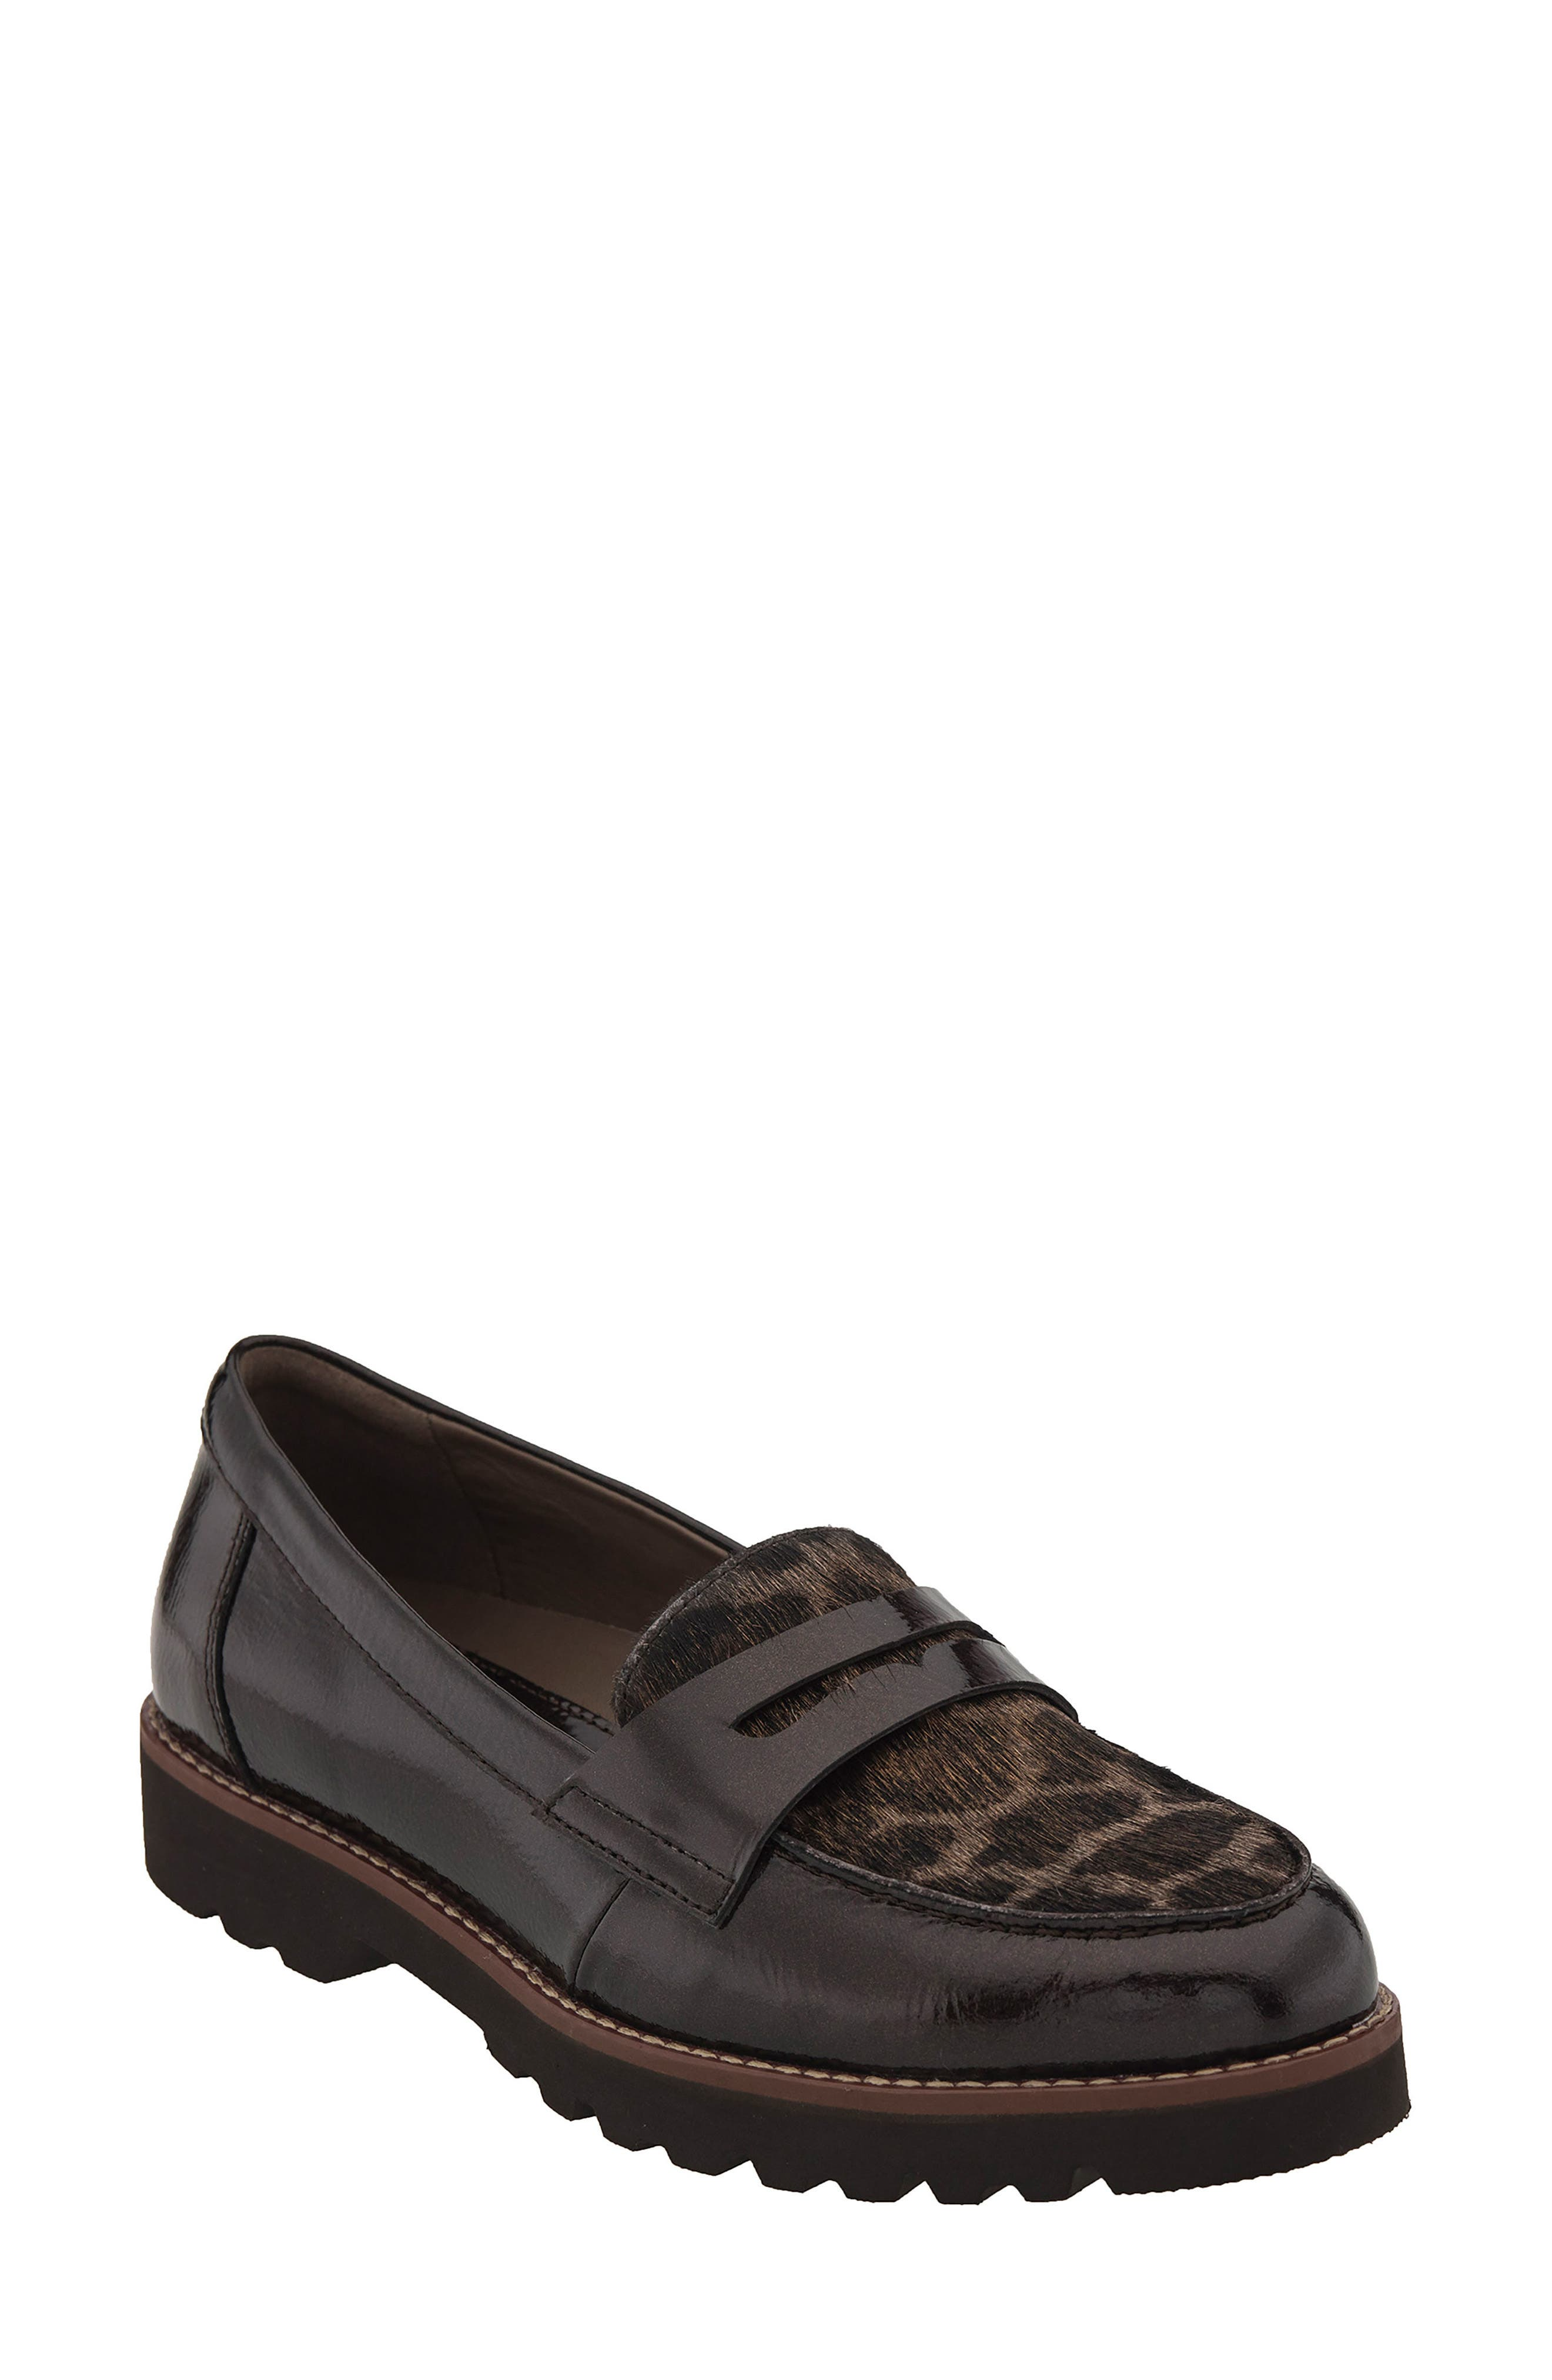 Main Image - Earthies Braga Leather & Genuine Calf Hair Loafer (Women)